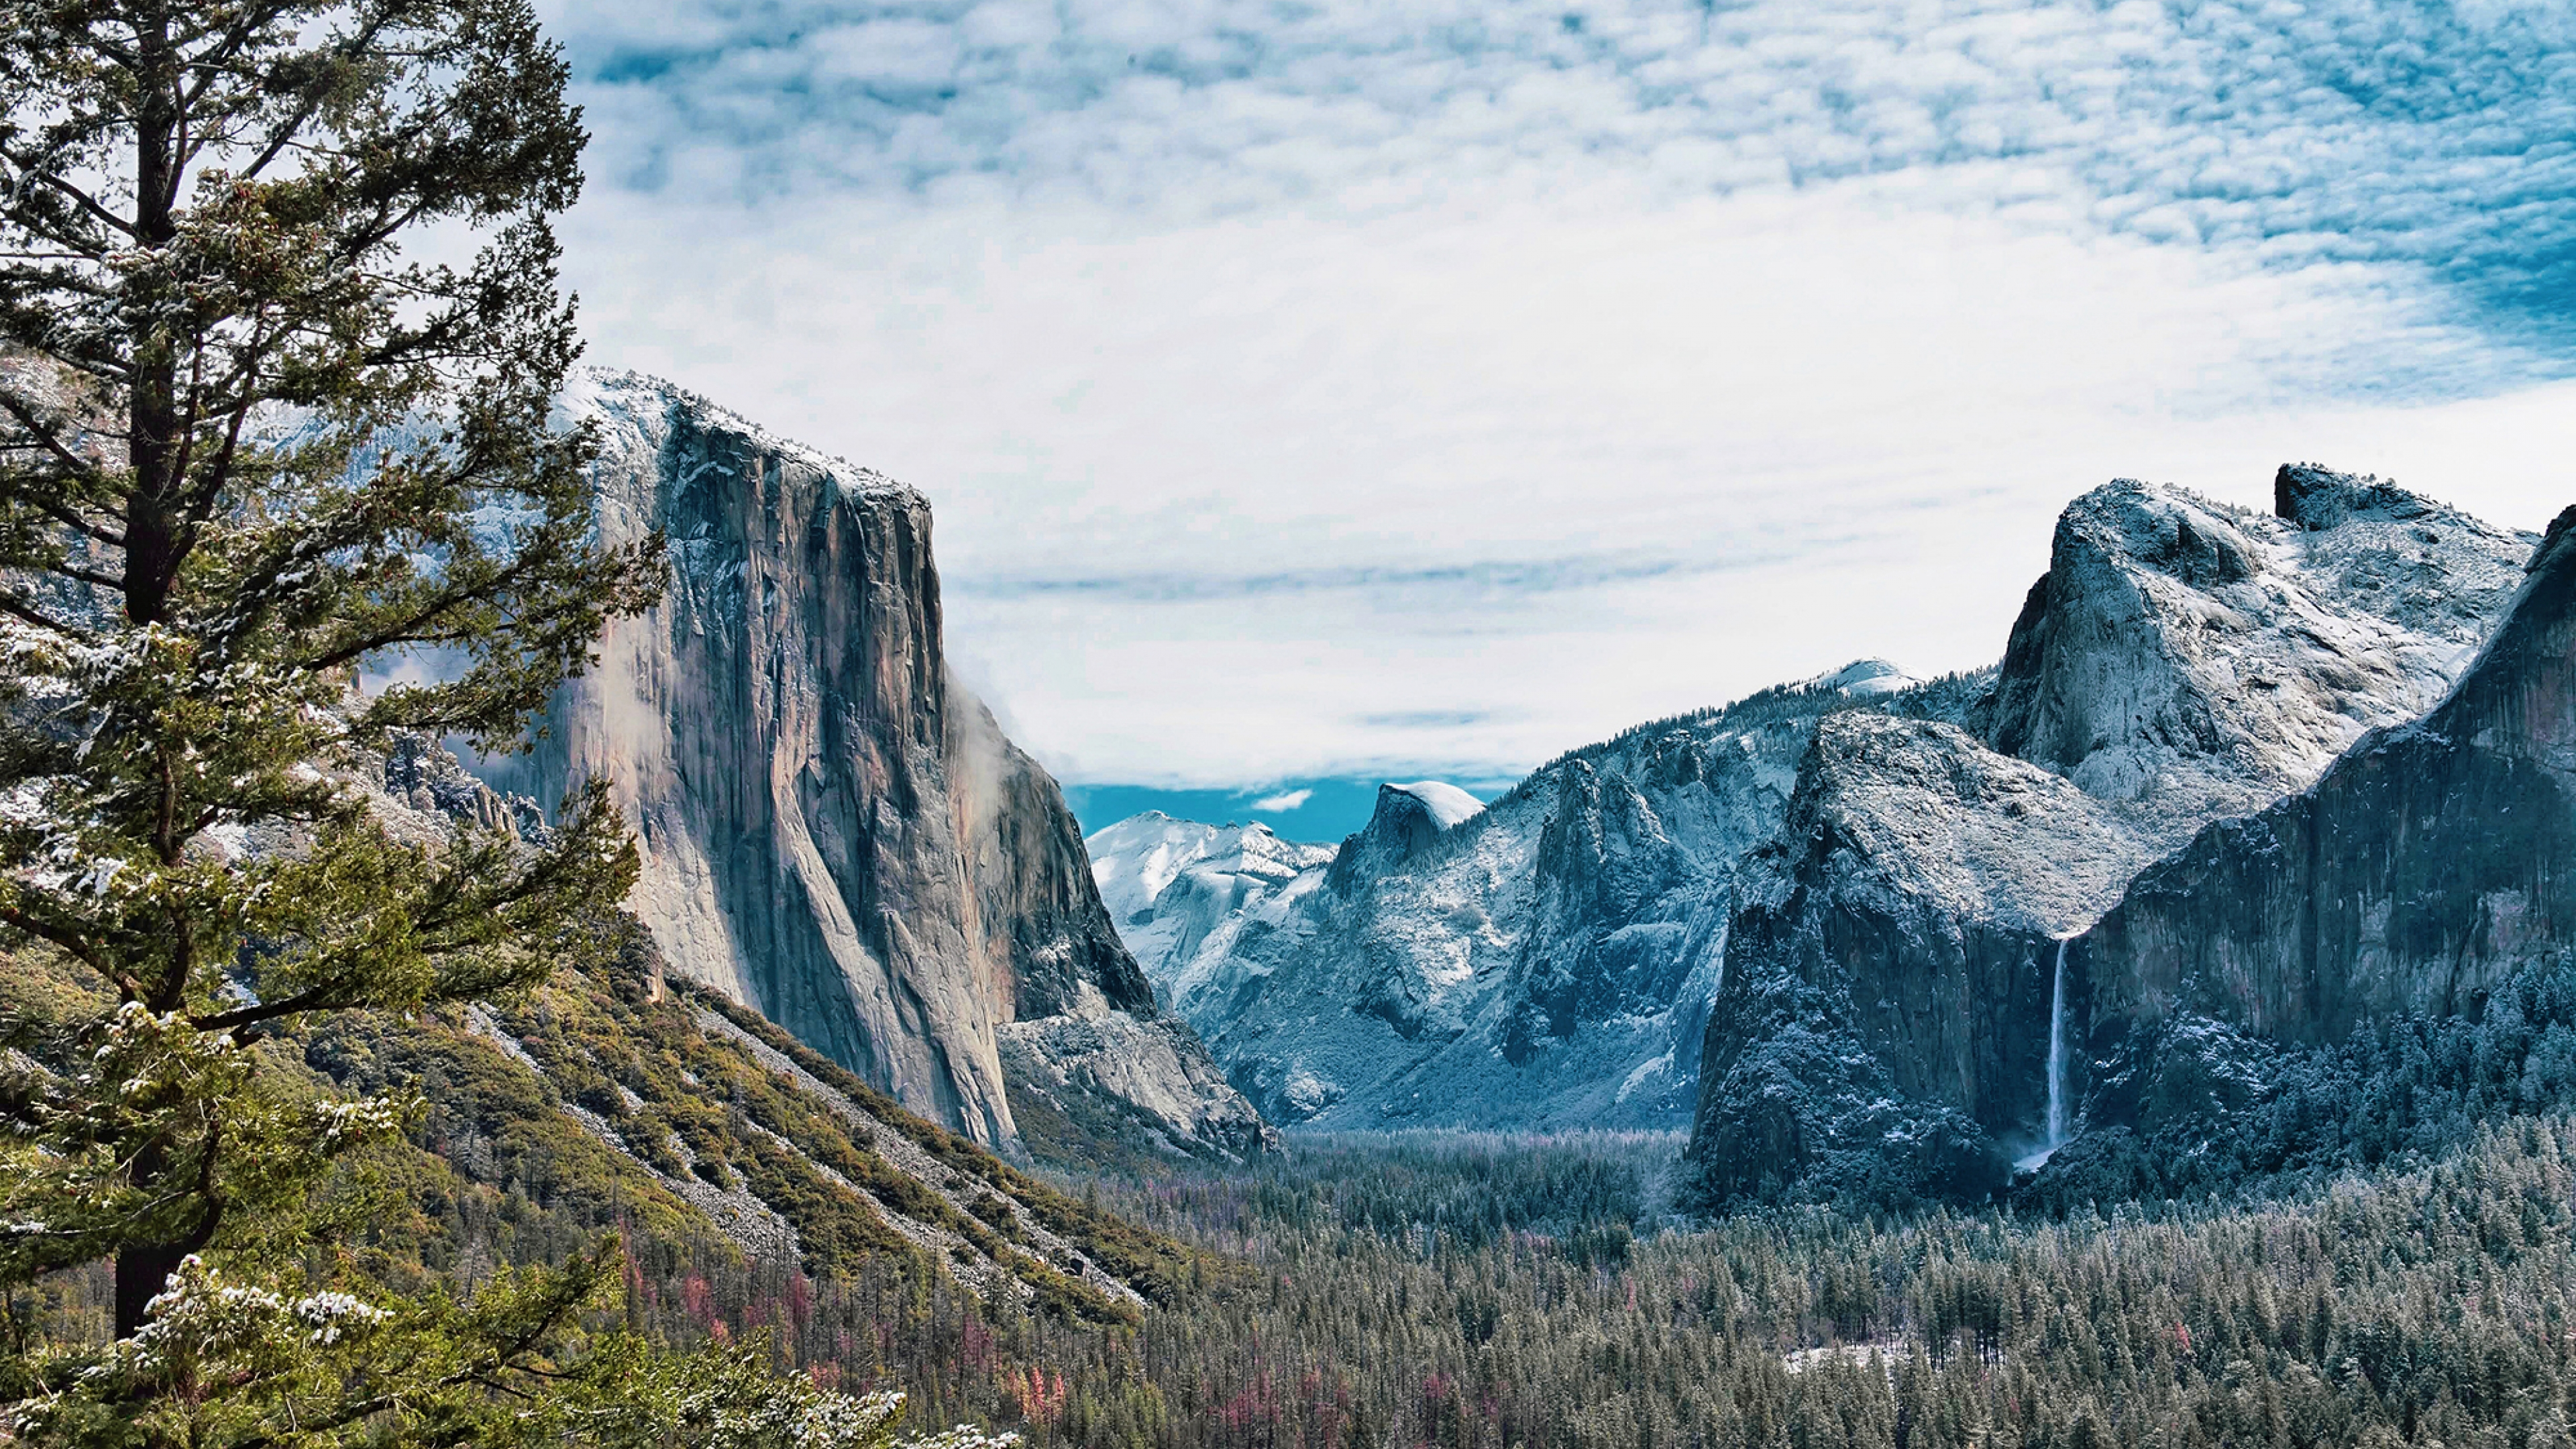 A green tree in the left foreground contrasts against the blue and grey mountains of Yosemite in the background